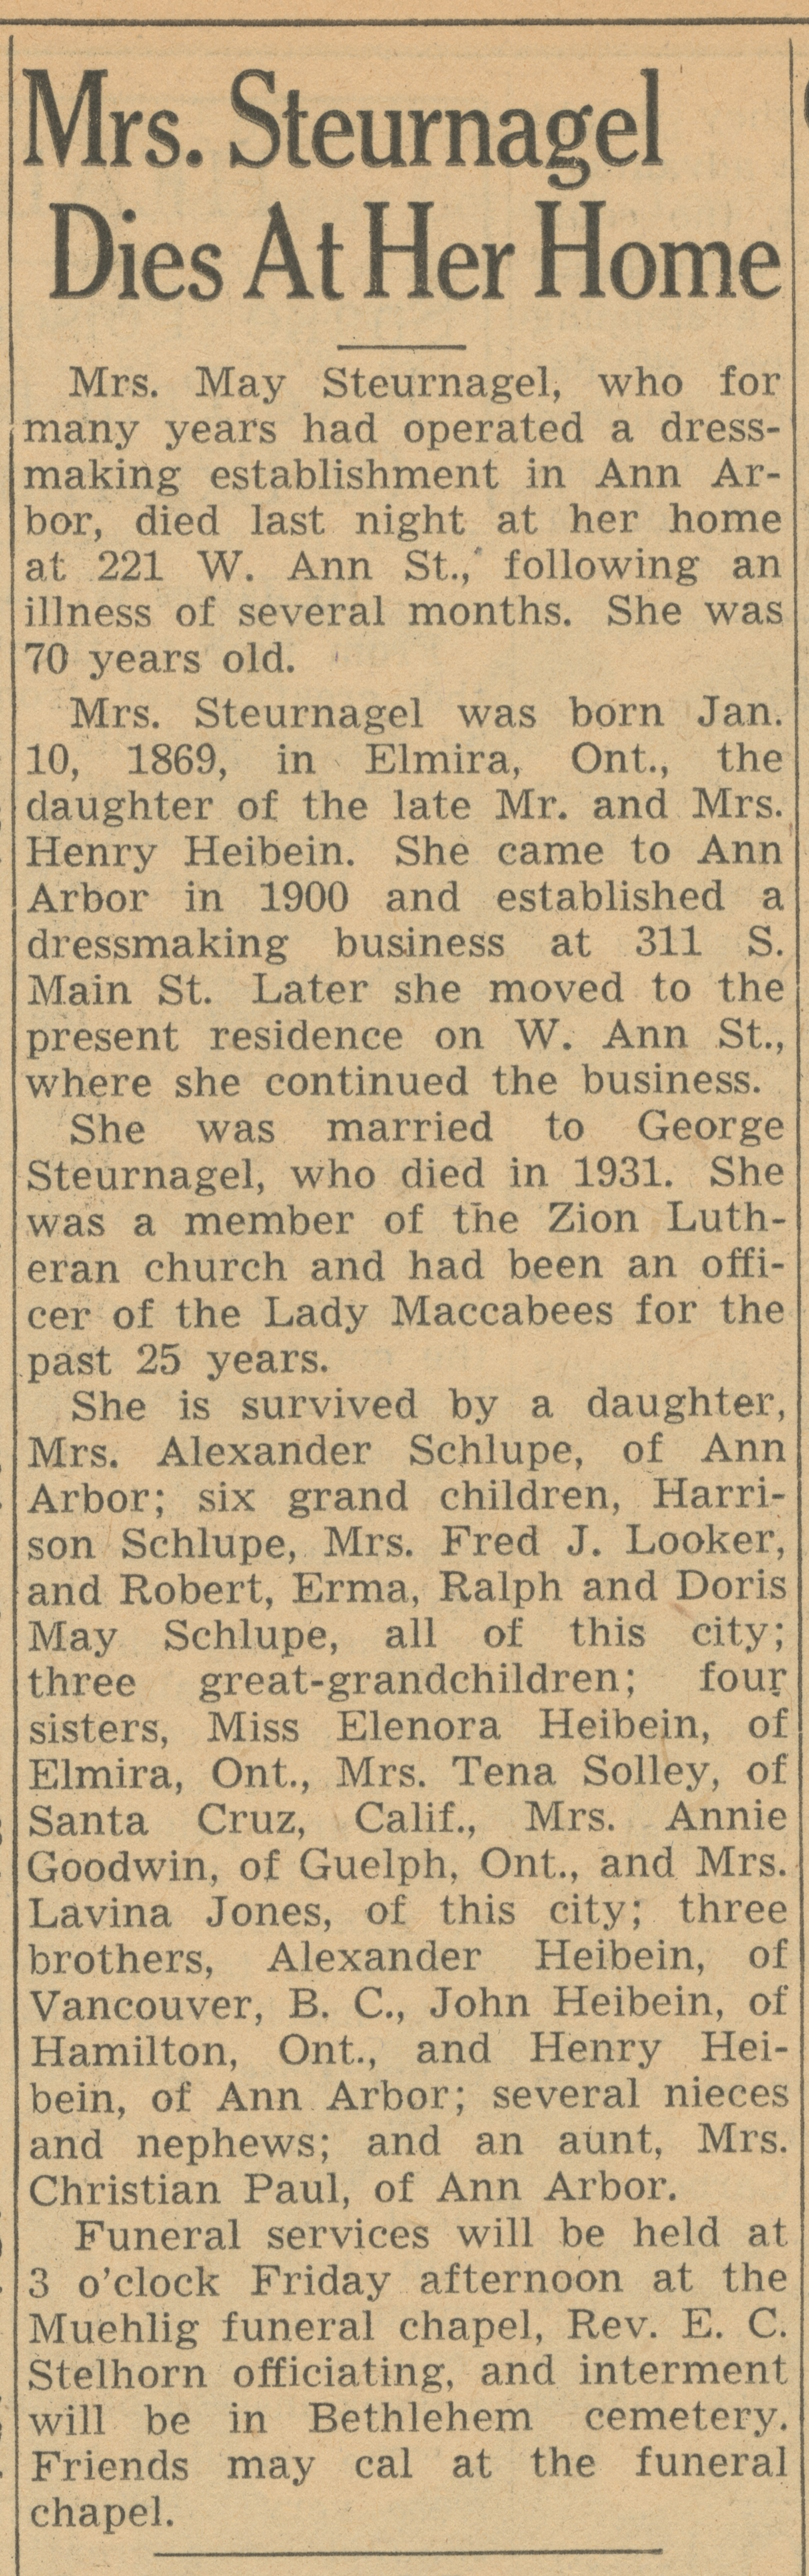 Mrs. Steurnagel Dies At Her Home image